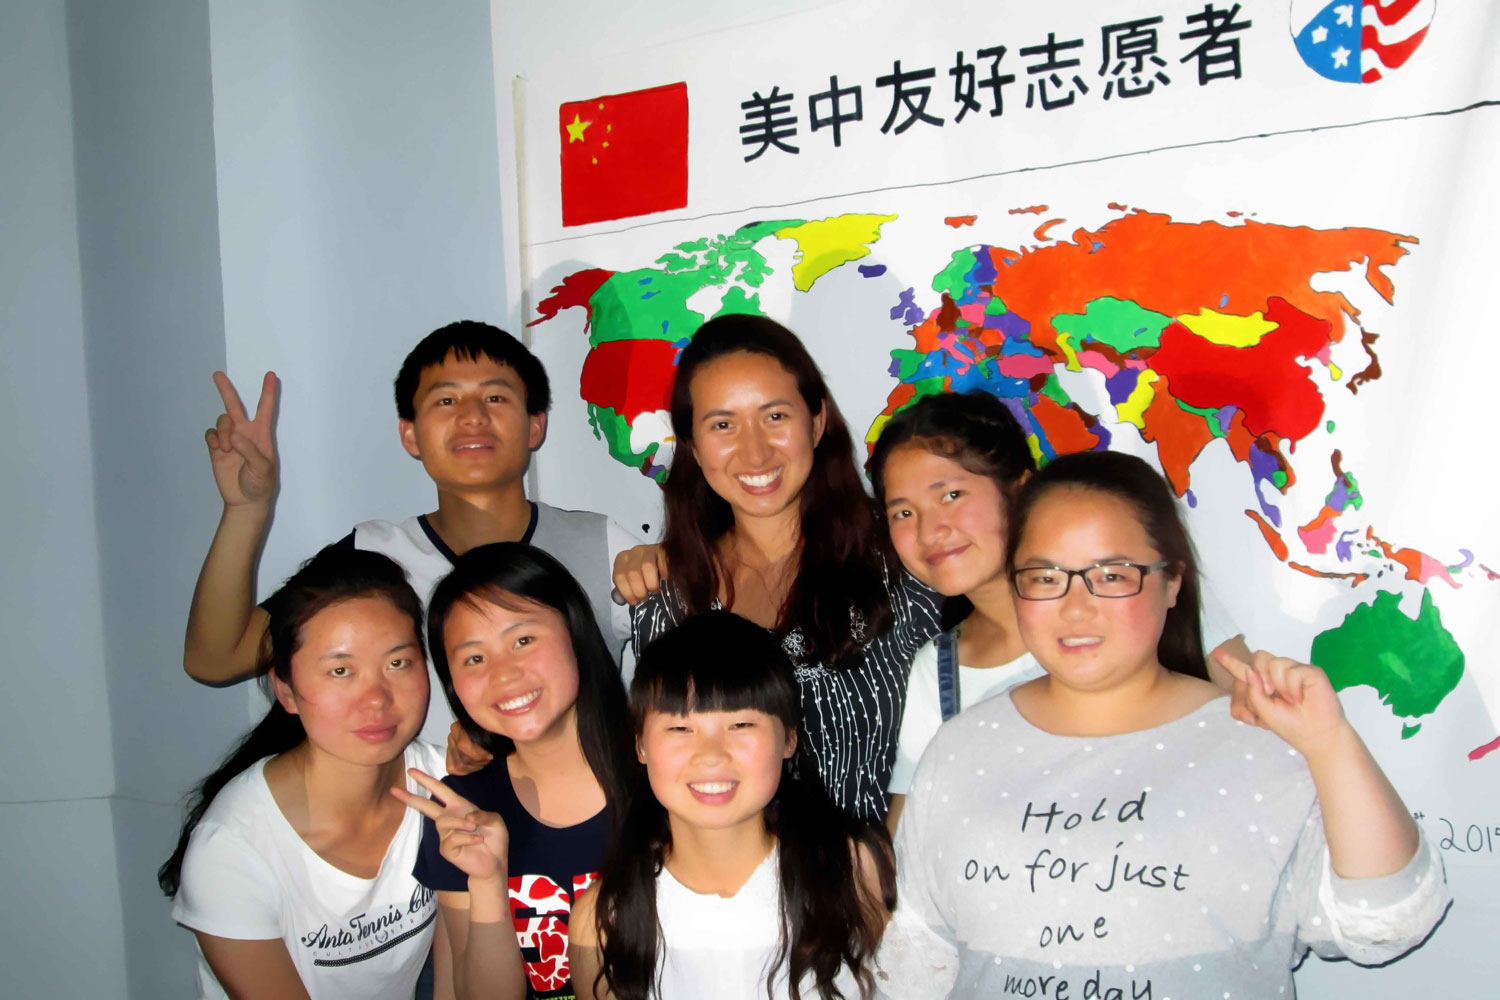 Former Peace Corps volunteer and UVA alumna Angelina Loverde, pictured here with her students, taught English in the southwestern Chinese province of Guizhou from 2013 to 2015. (Contributed photo)